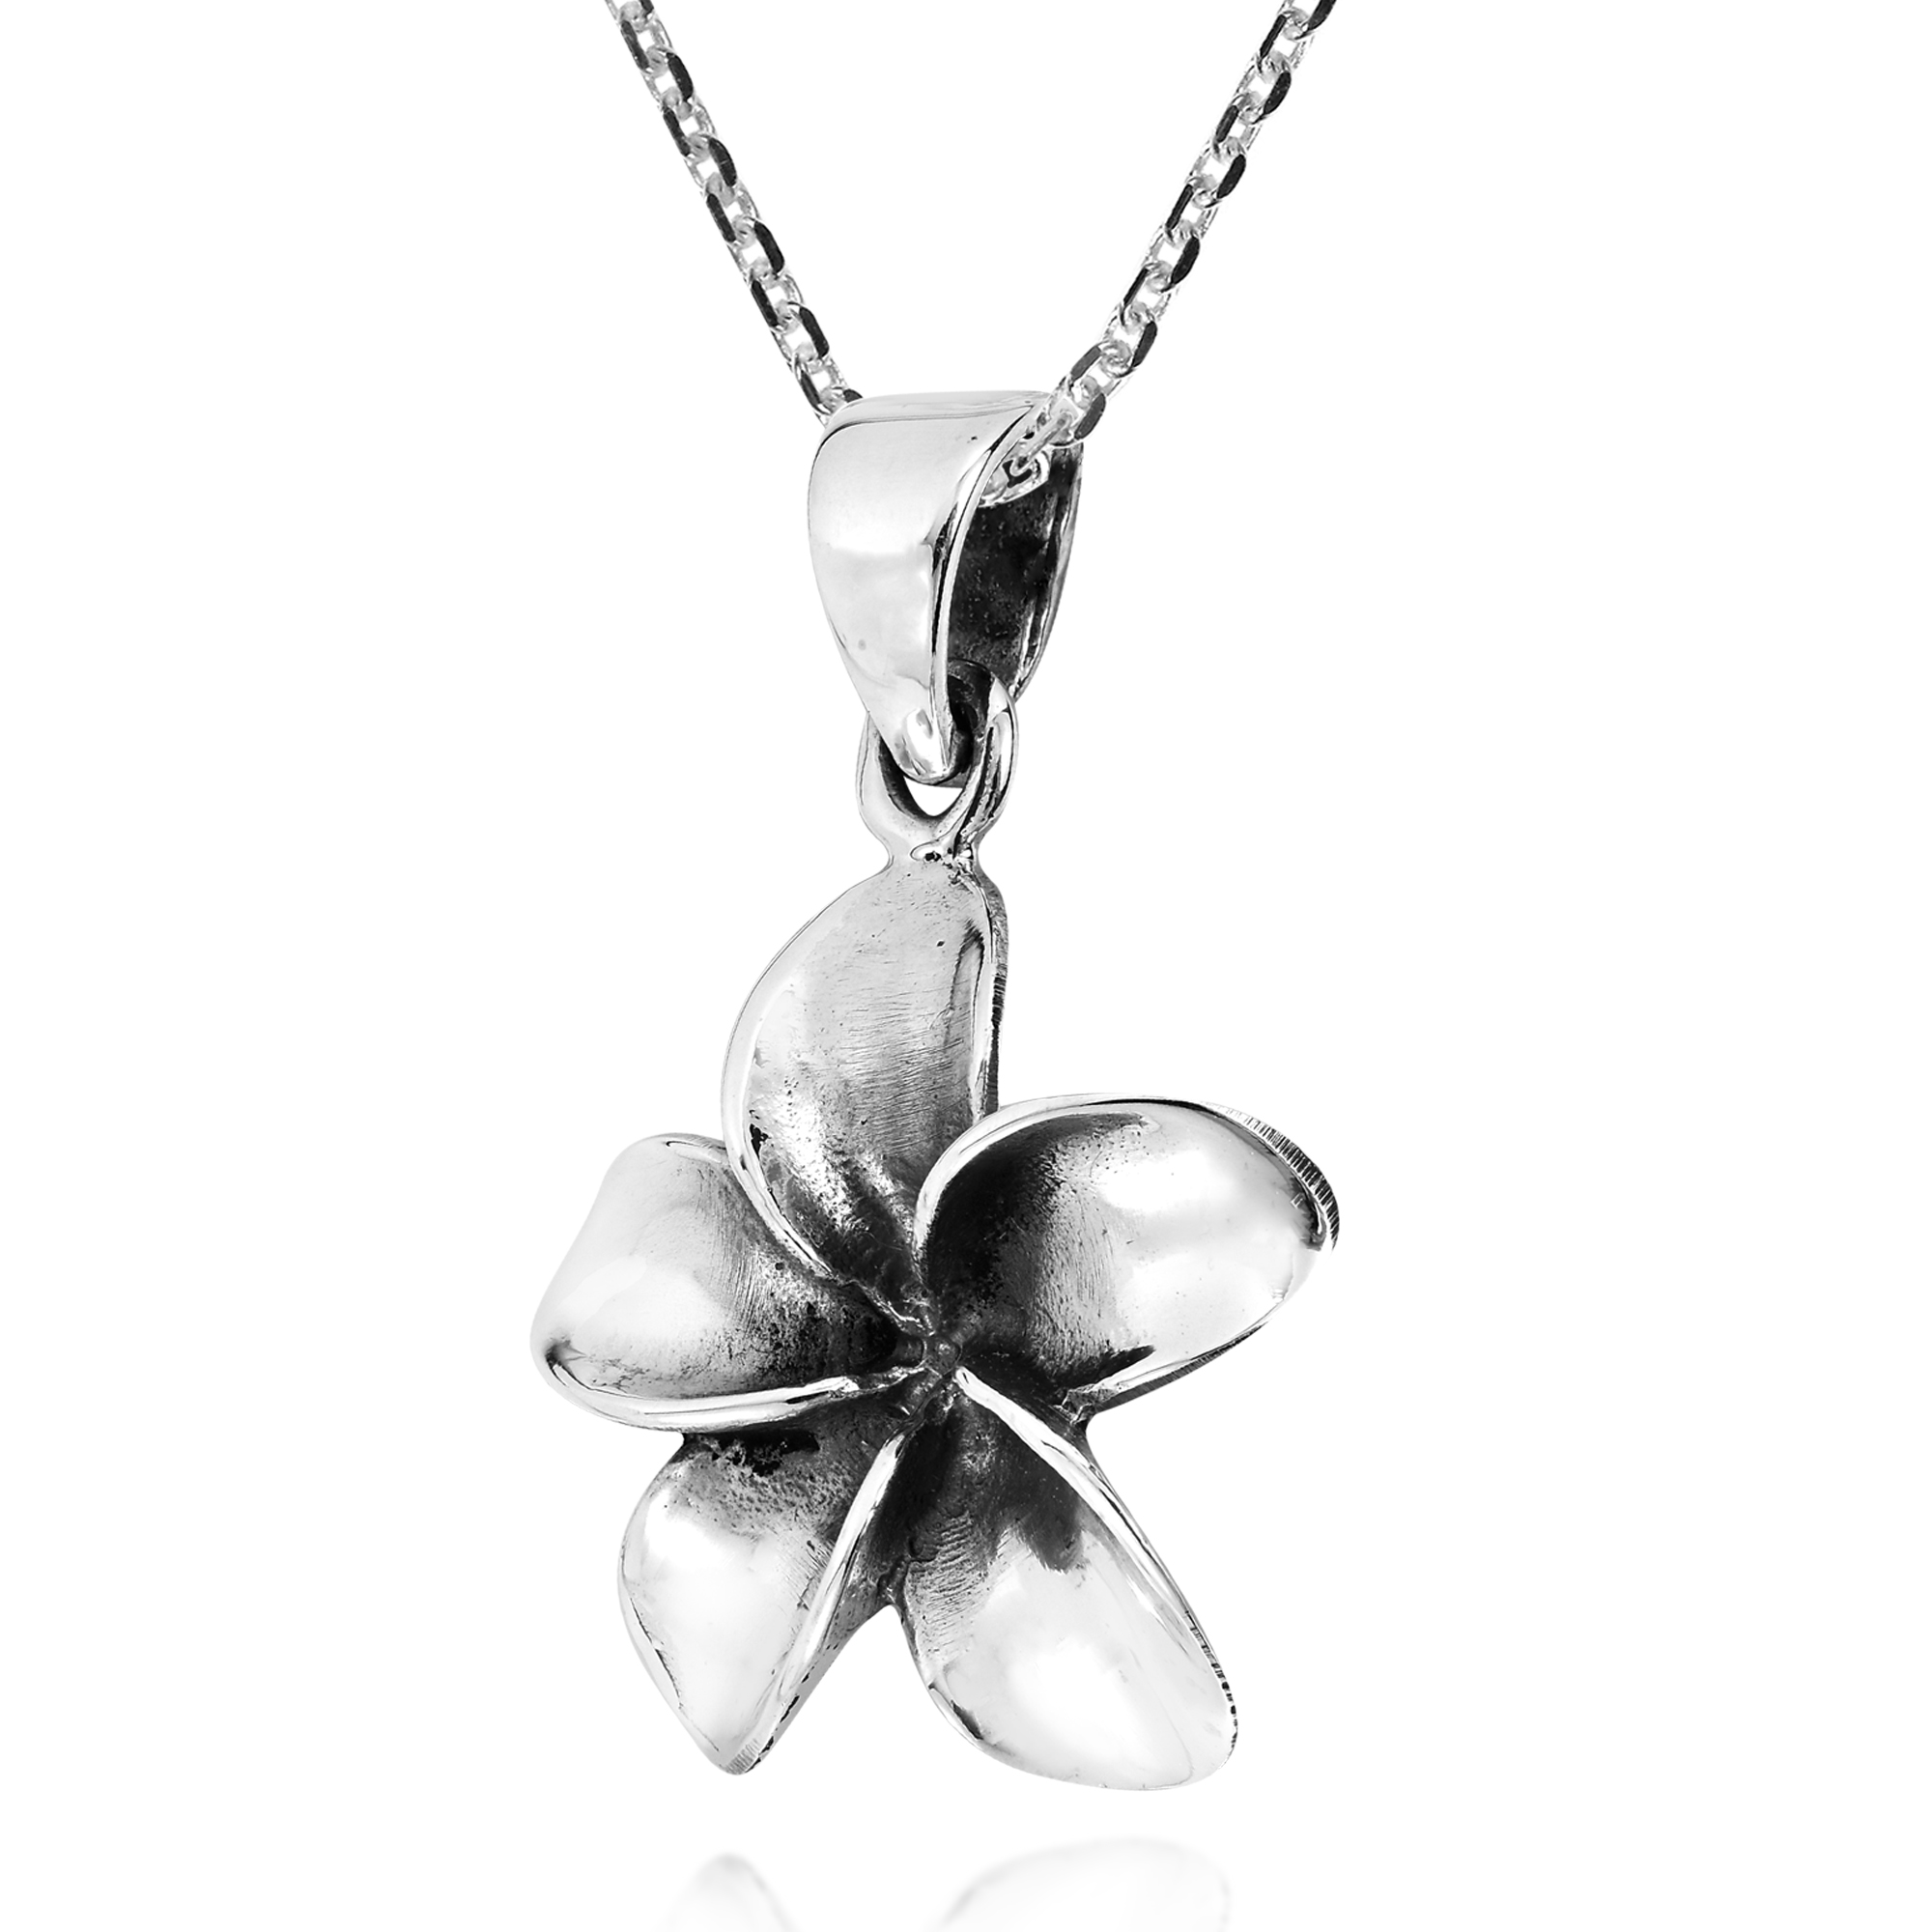 Cute hawaiian plumeria flower sterling silver necklace aeravida express your chic and symbolic style with this precious hawaiian plumeria flower pendant which rests upon an 18 inches sterling silver cable chain with izmirmasajfo